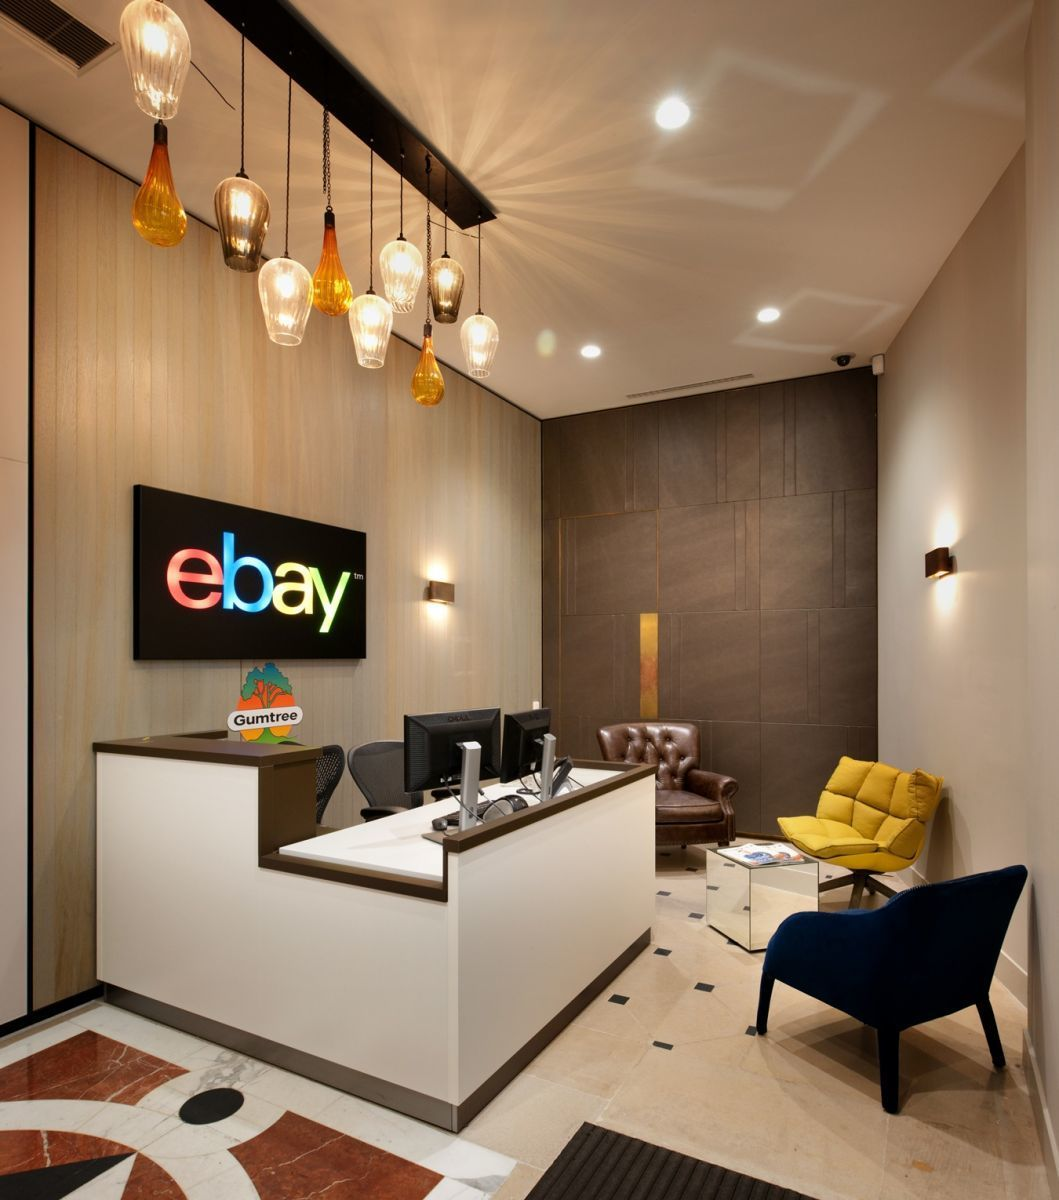 Cool Quirky Fixtures In This Small But Perfectly Formed Reception Area For Ebay By Our Sister Company Morgan Lovell